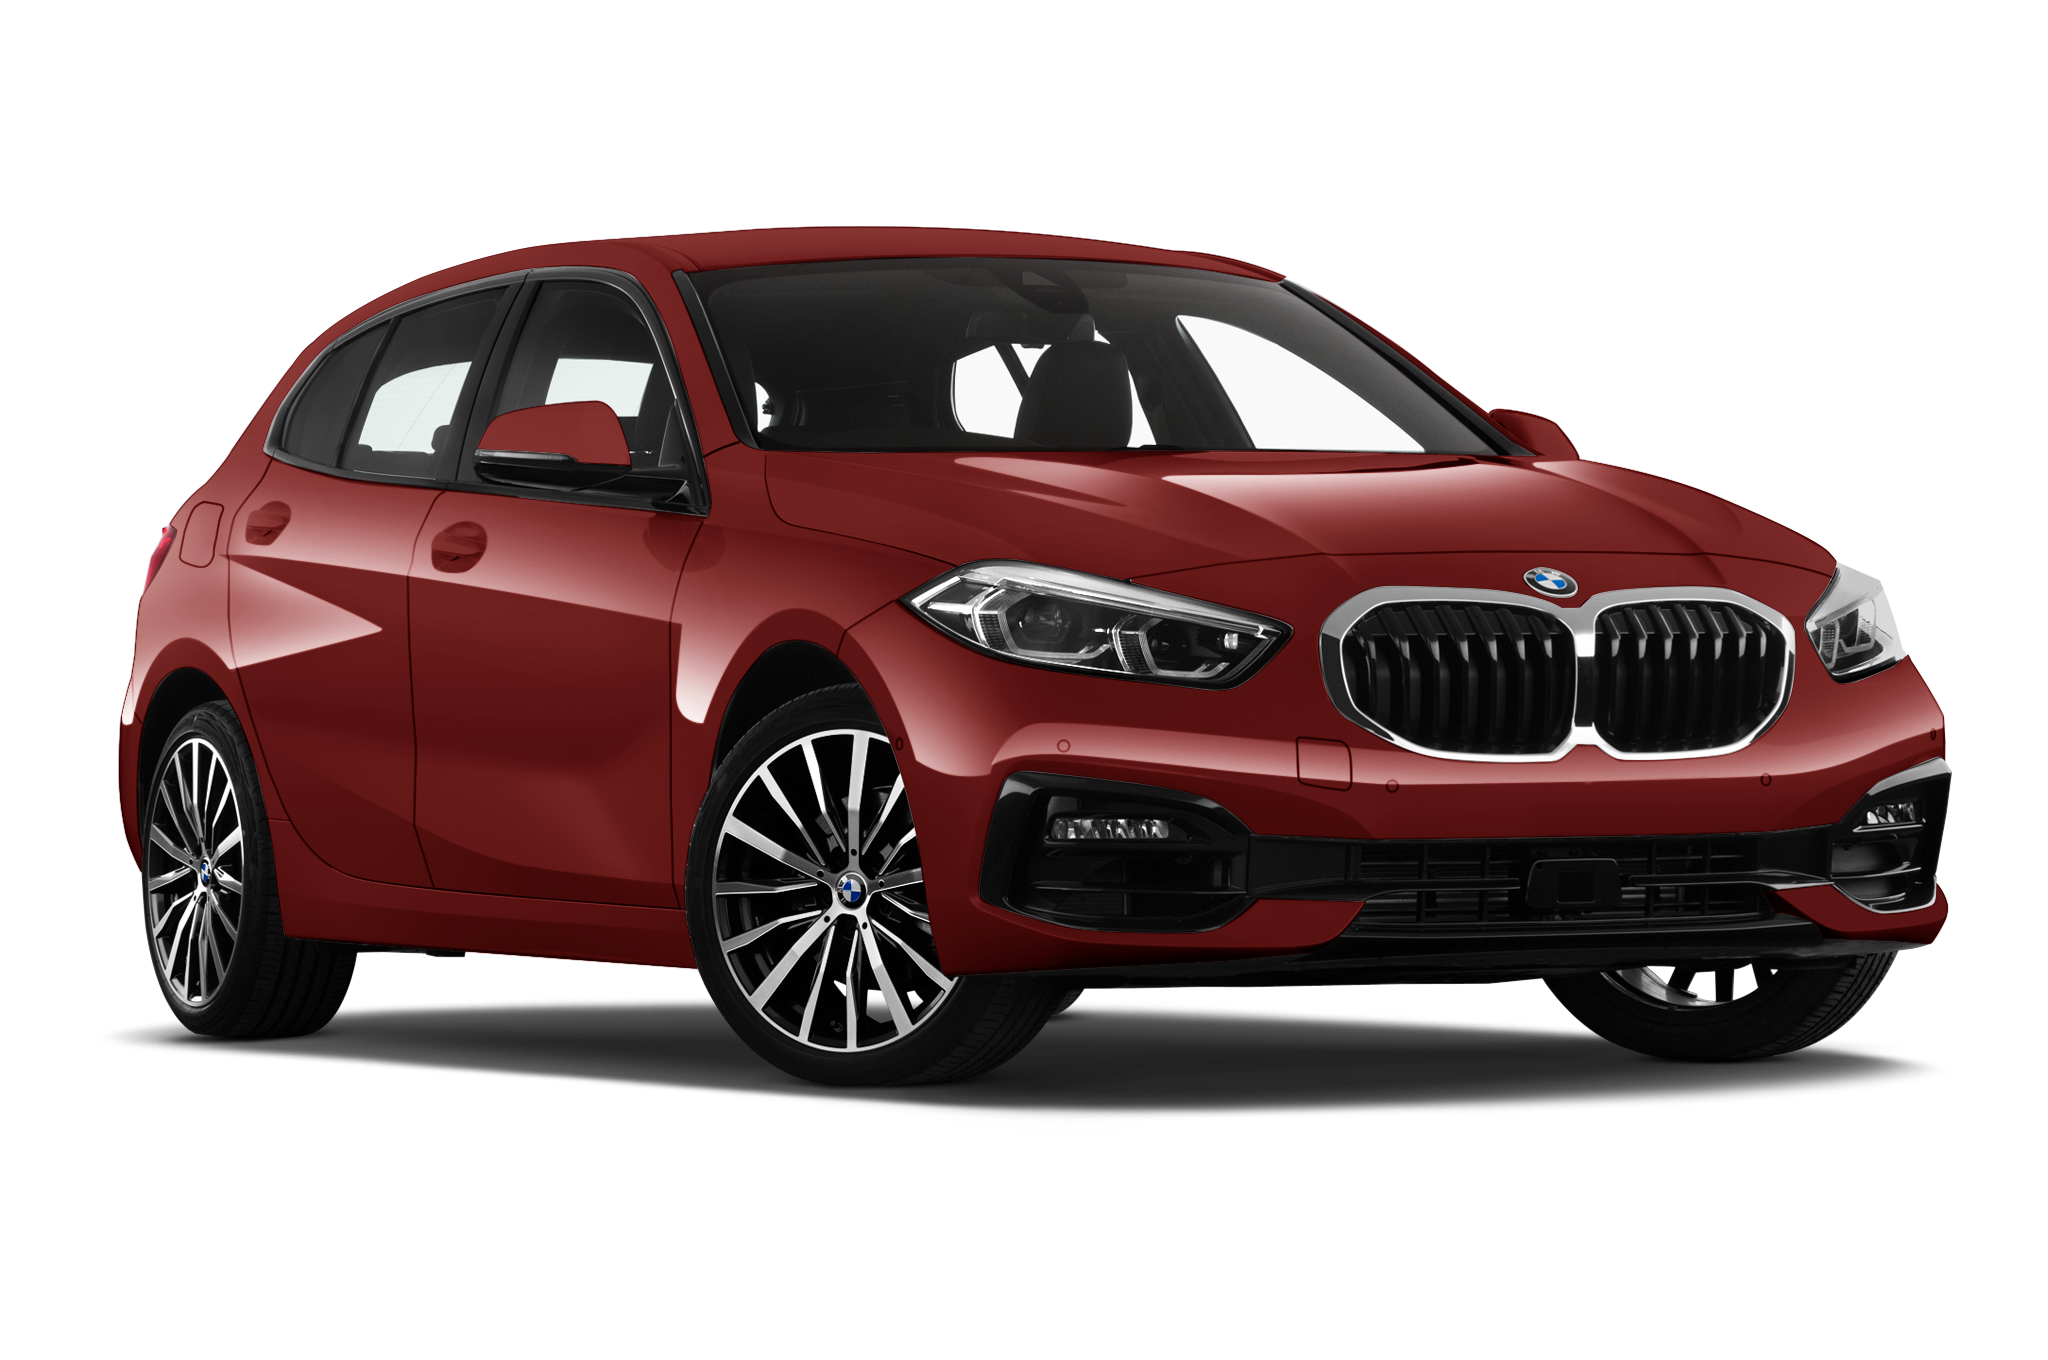 New Bmw 1 Series Deals Offers Save Up To 4 753 Carwow